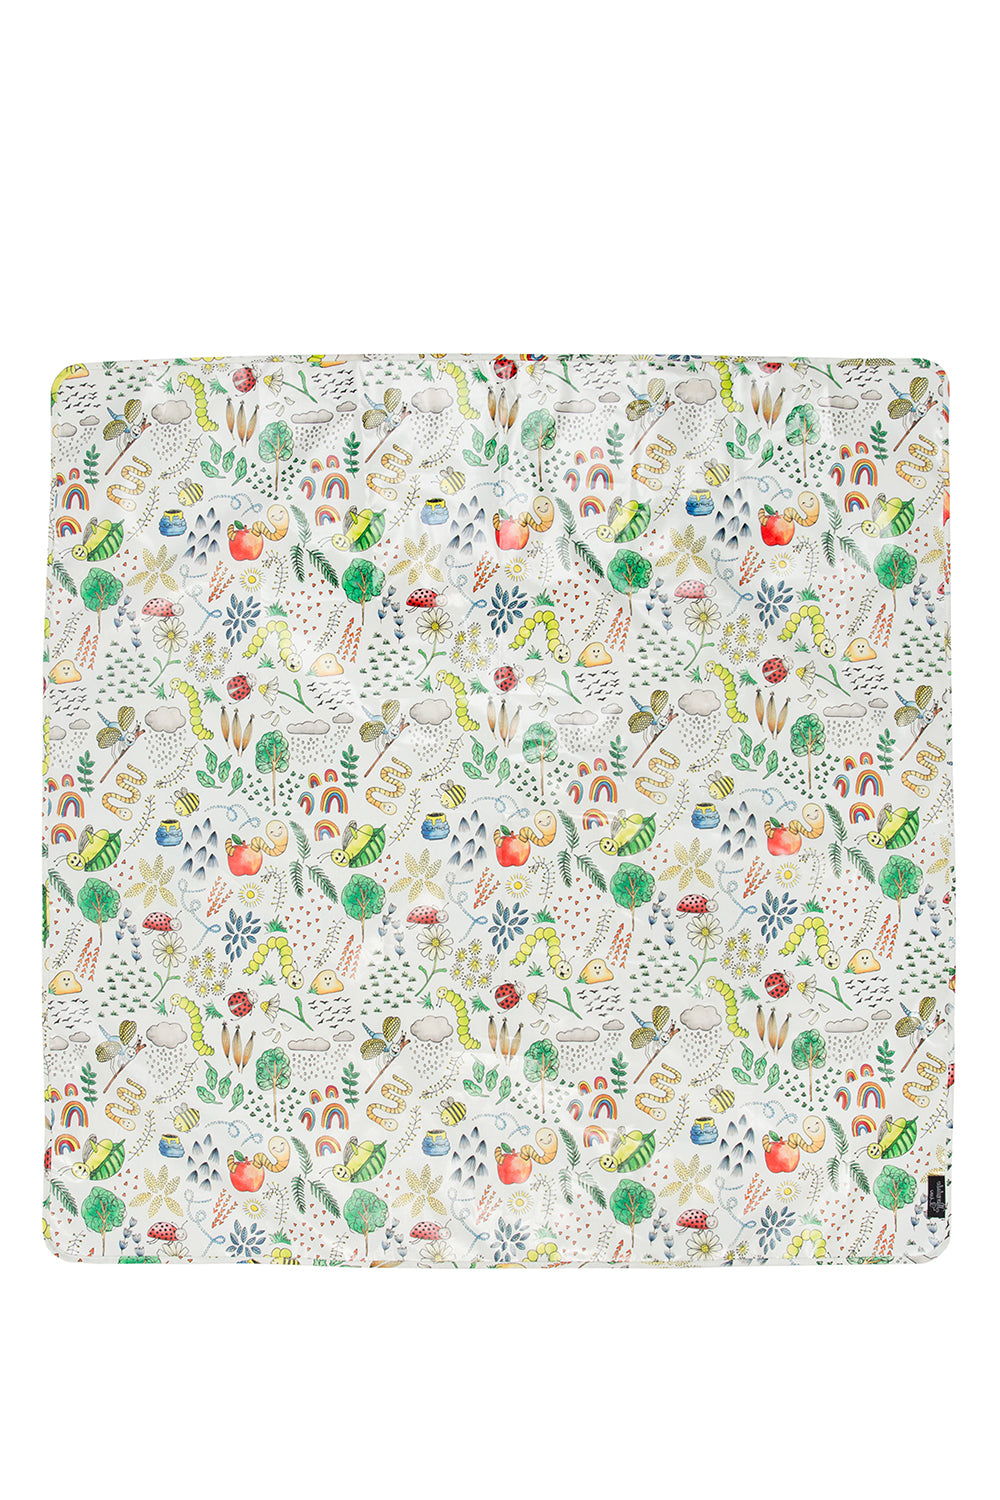 Little Creatures Splat Mat (Pre-Order Only)